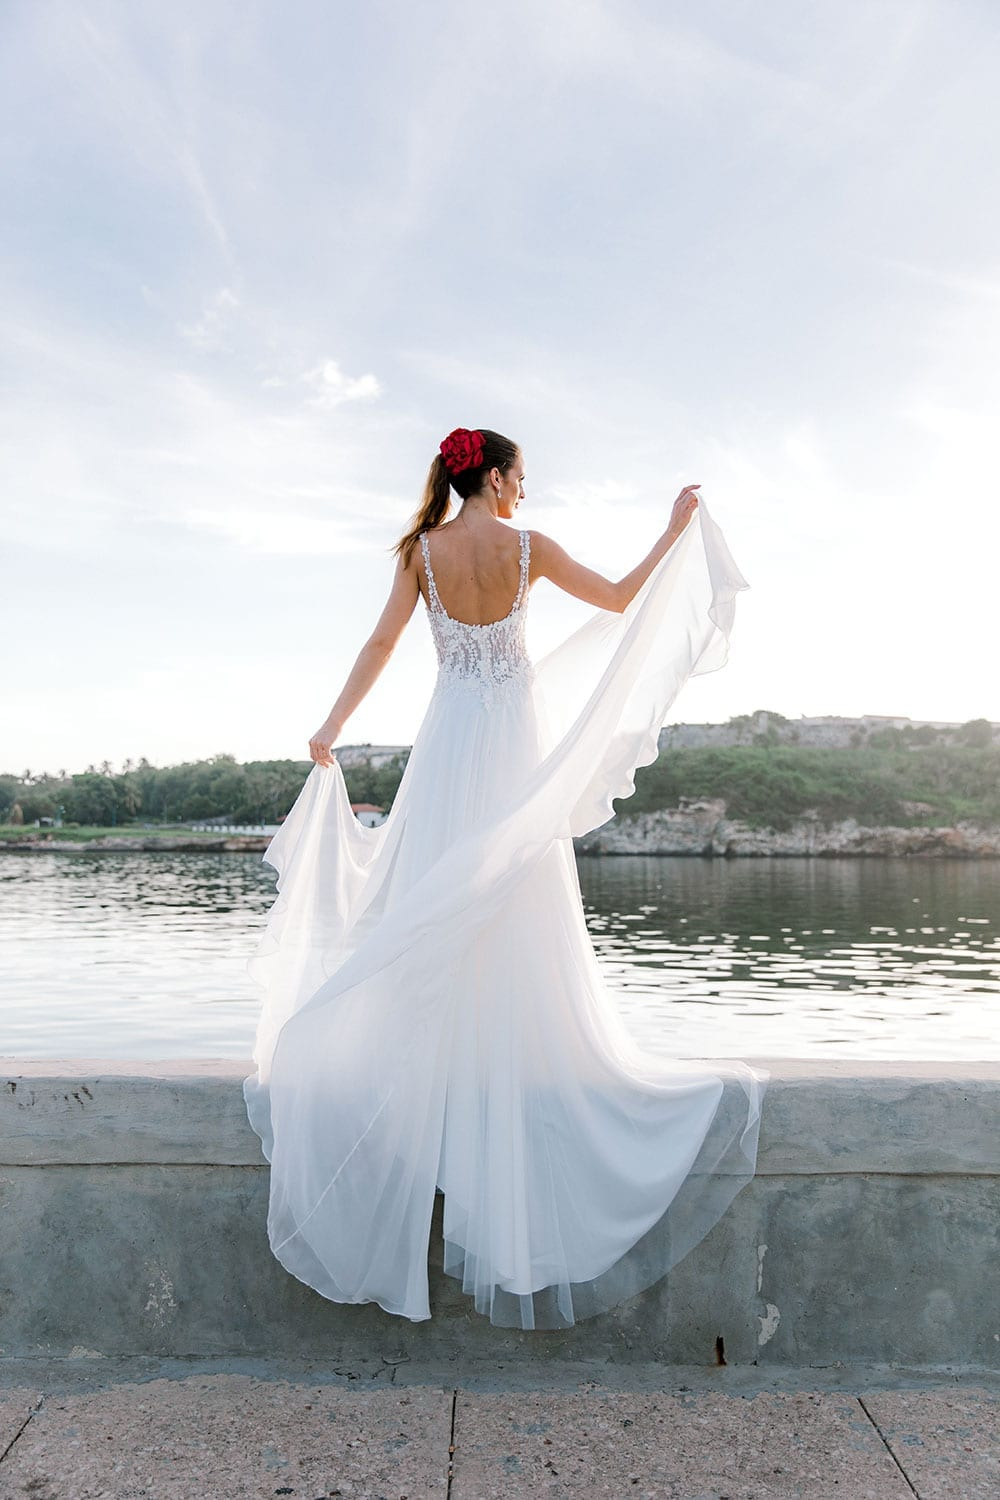 Model wearing Vinka Design Iris Wedding Dress, a Silk Chiffon Wedding Gown posed on a paved walkway in Havana facing away with hand in the air and dress flowing